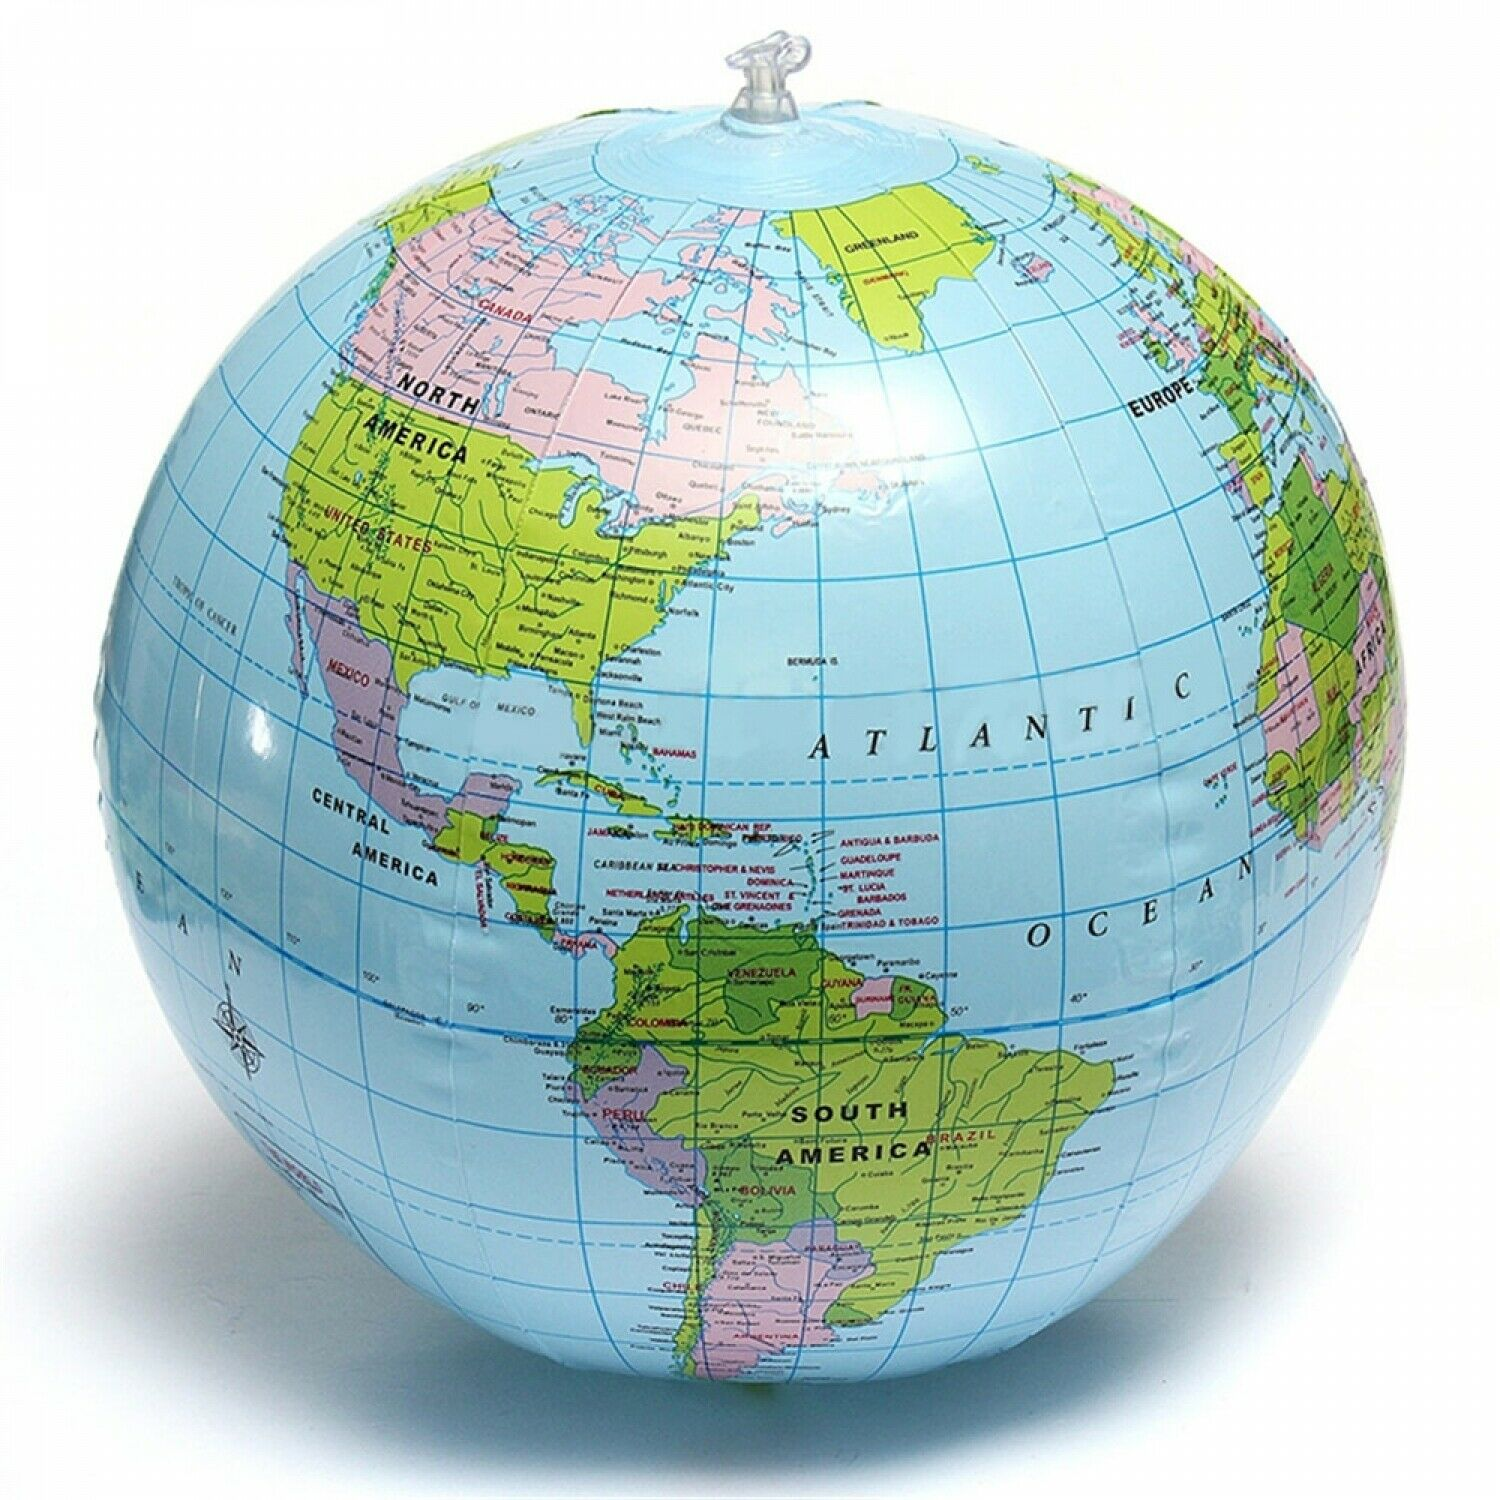 30cm Inflatable Blow Up World Globe Earth Map Ball Educational Planet Earth Ball Ocean Kid Learning Geography Toy Home 5